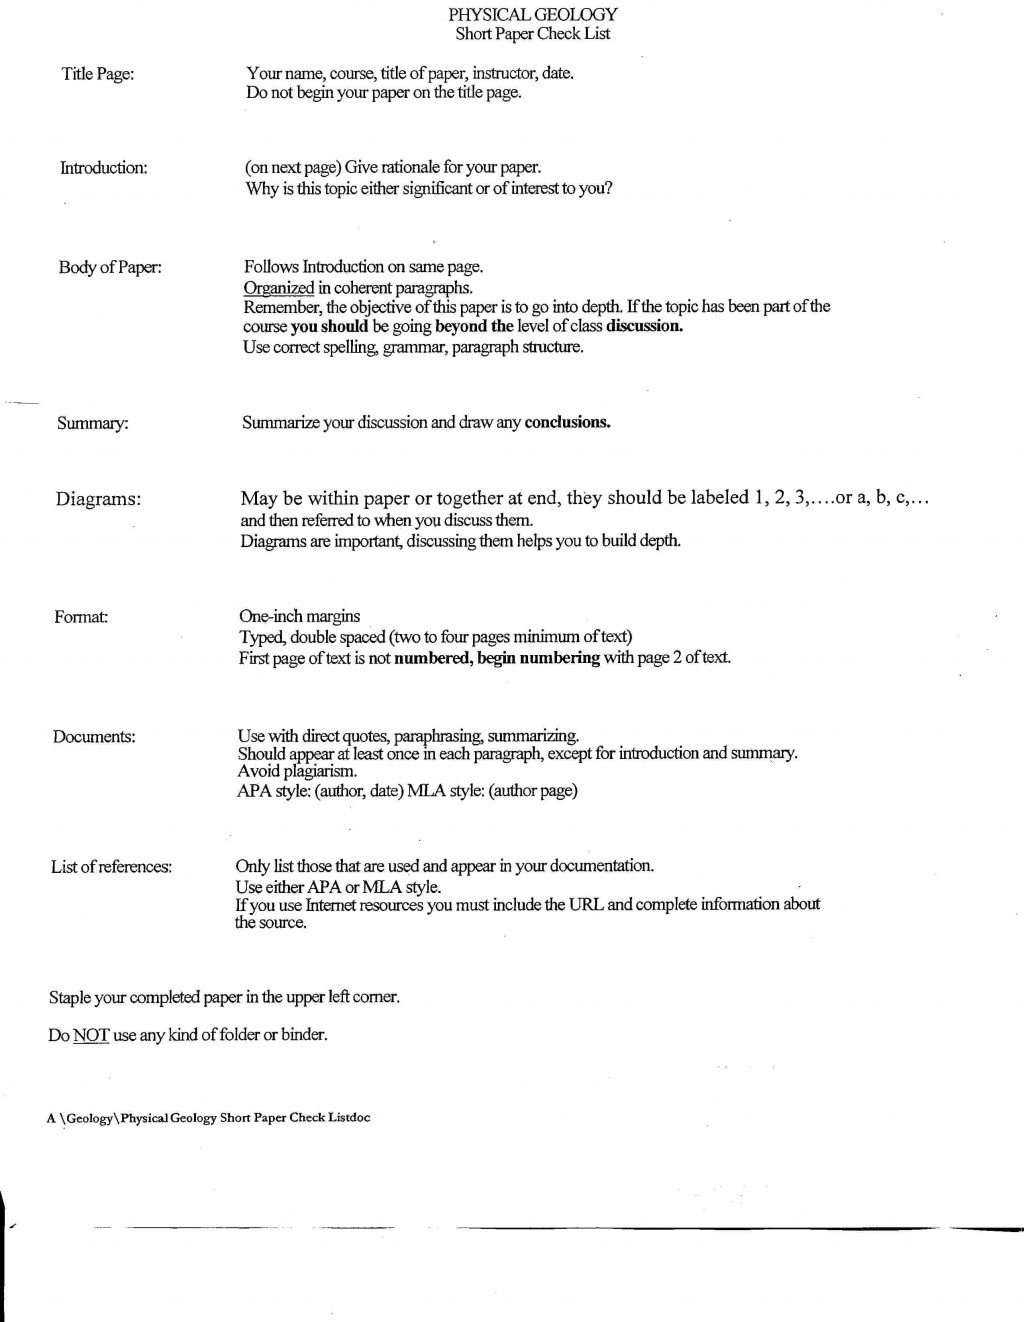 010 Researchs Topics Short Checklist Phenomenal Research Papers For High School Students Paper About Elementary Education Hot In Computer Science Large